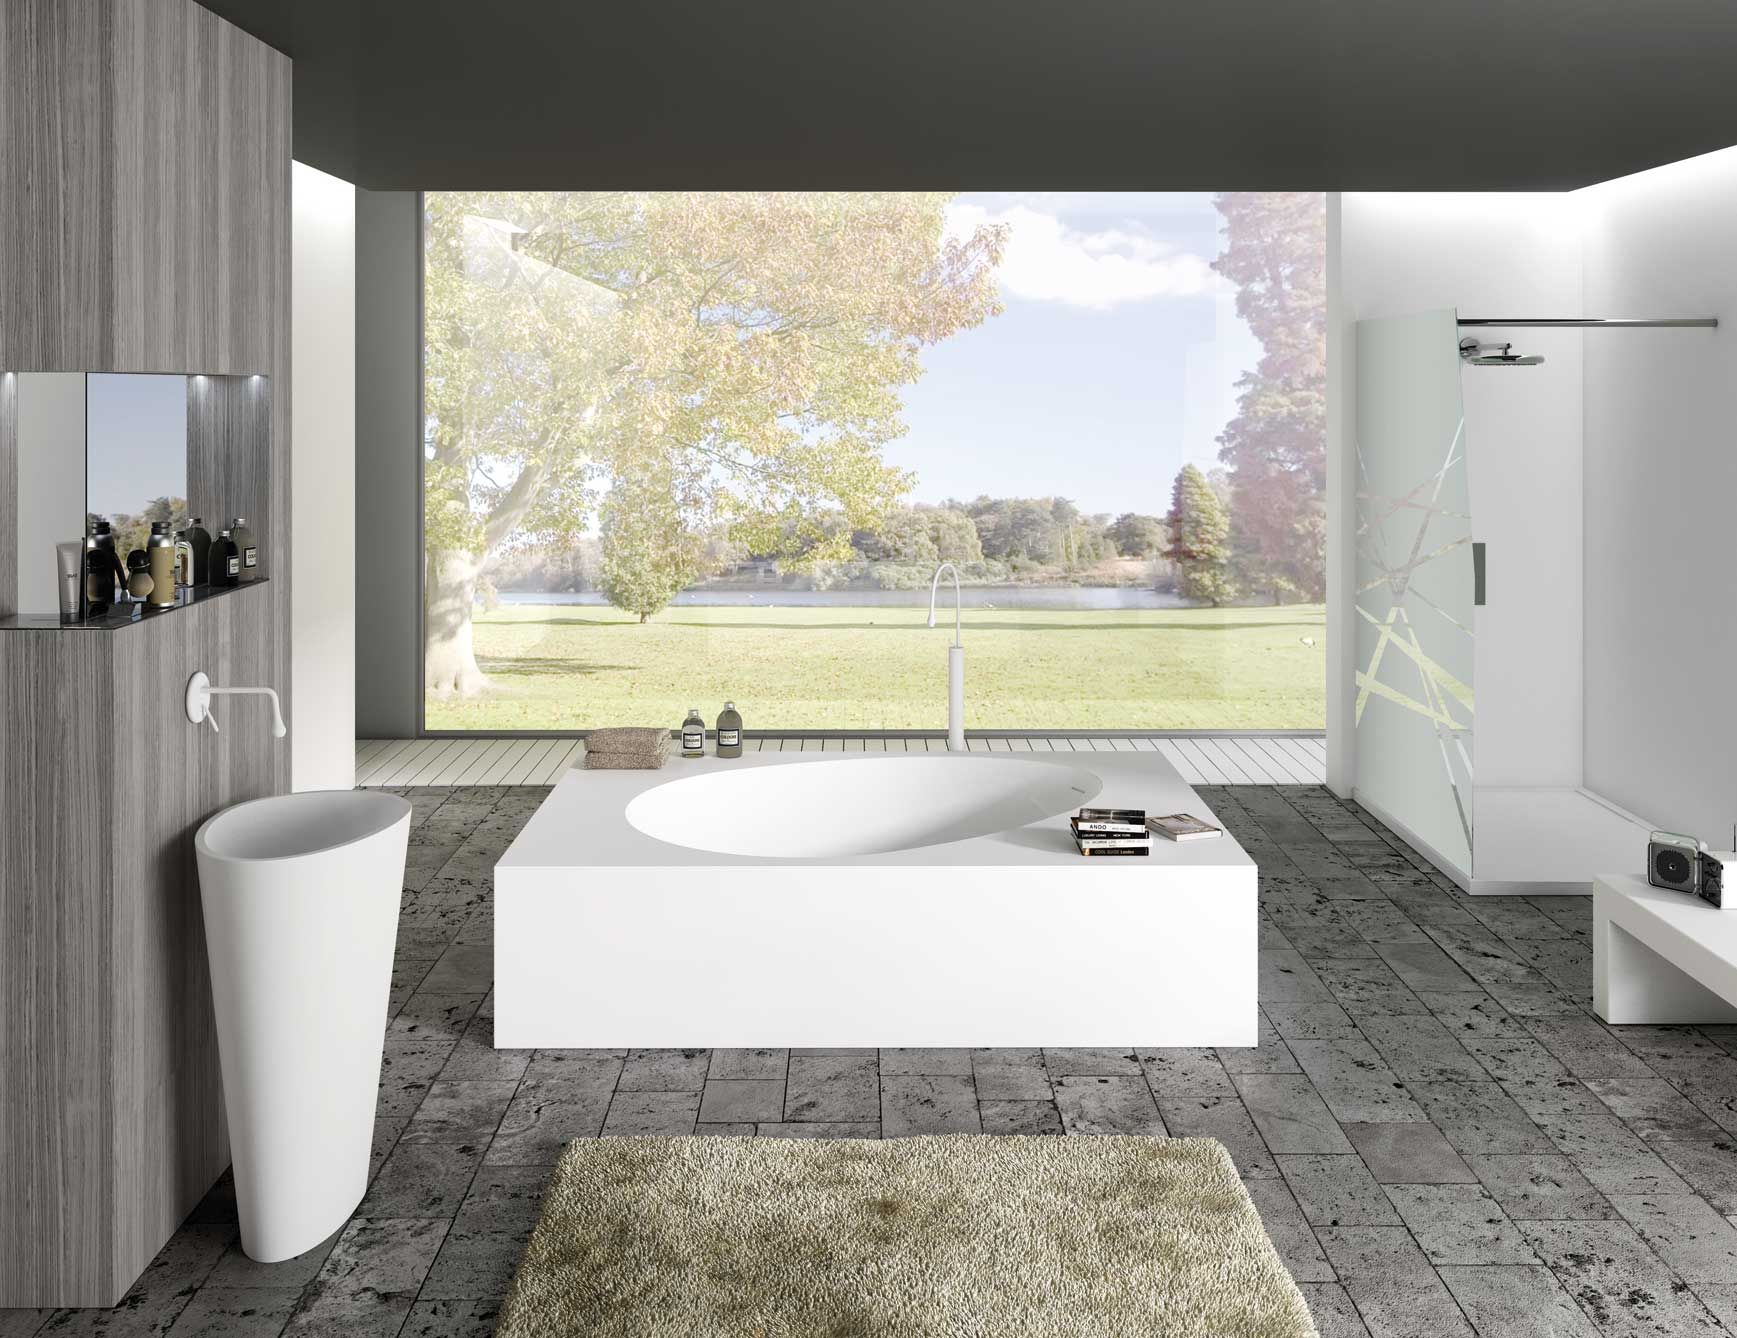 Modern Italian bathtub inspired by egg shape. Bathtub made from a ...